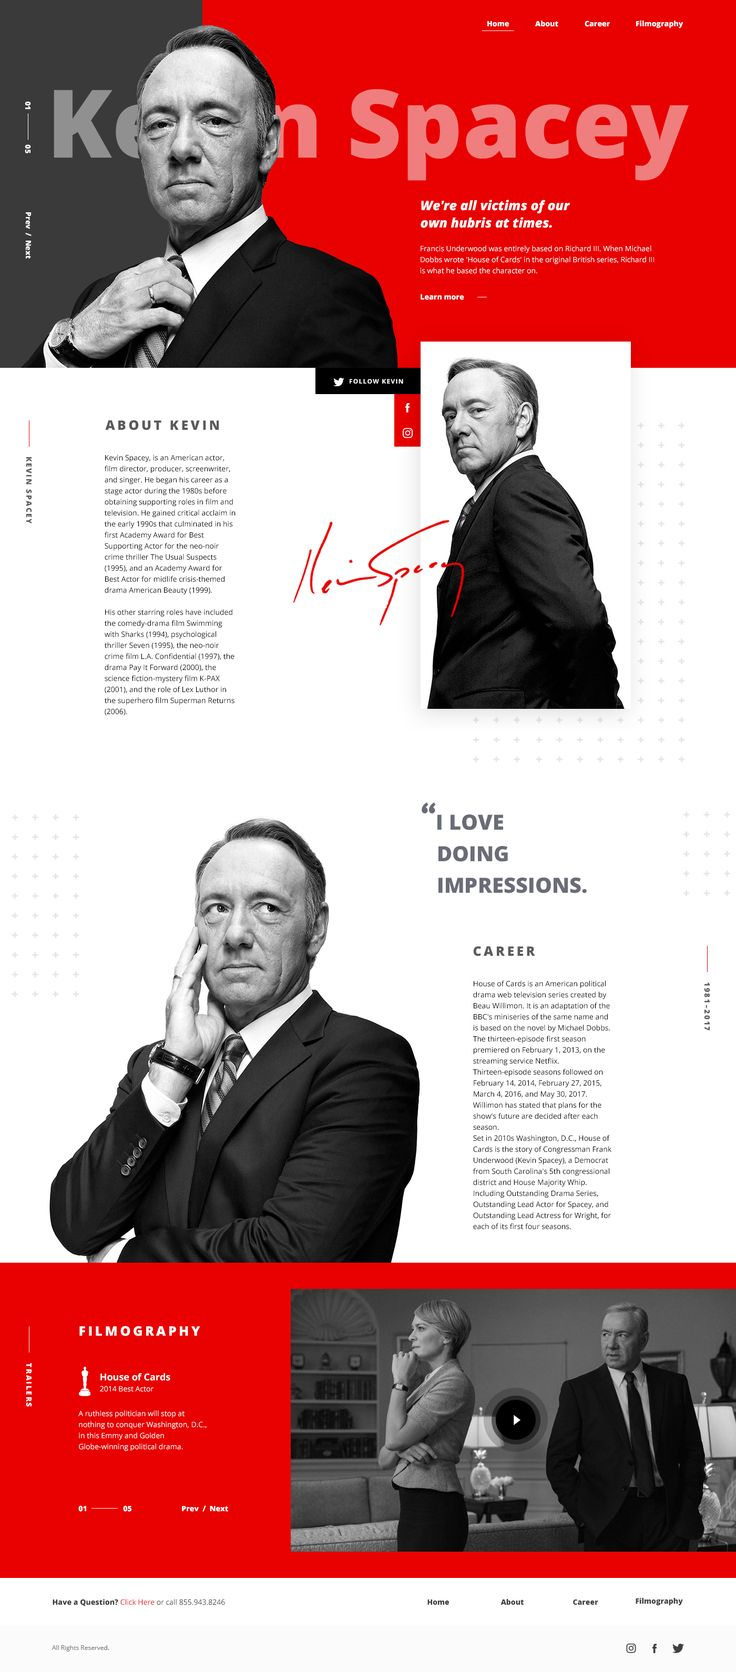 I lovee Kevin Spacey. Too bad his case just stop all his works